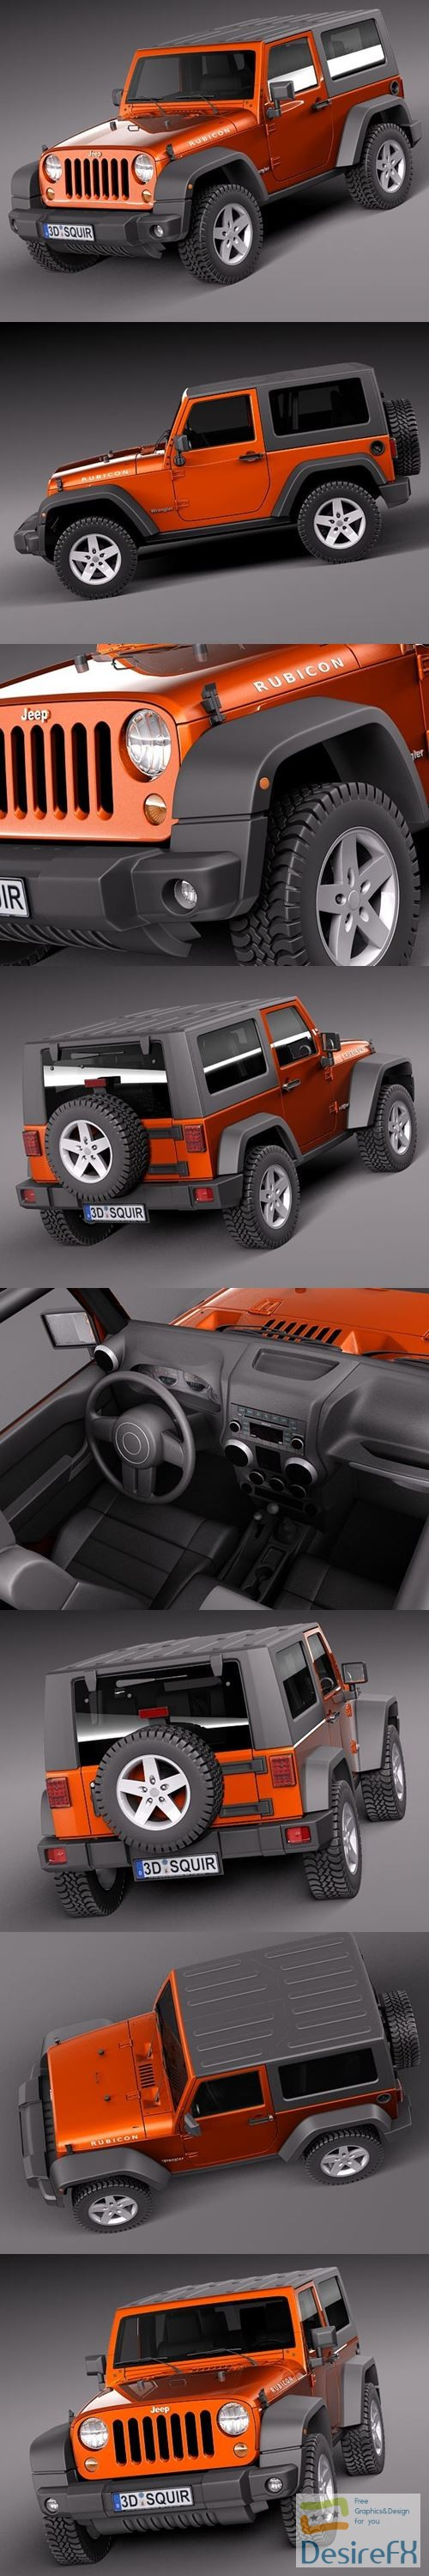 3d-models - Jeep Wrangler Rubicon 2012 3D Model